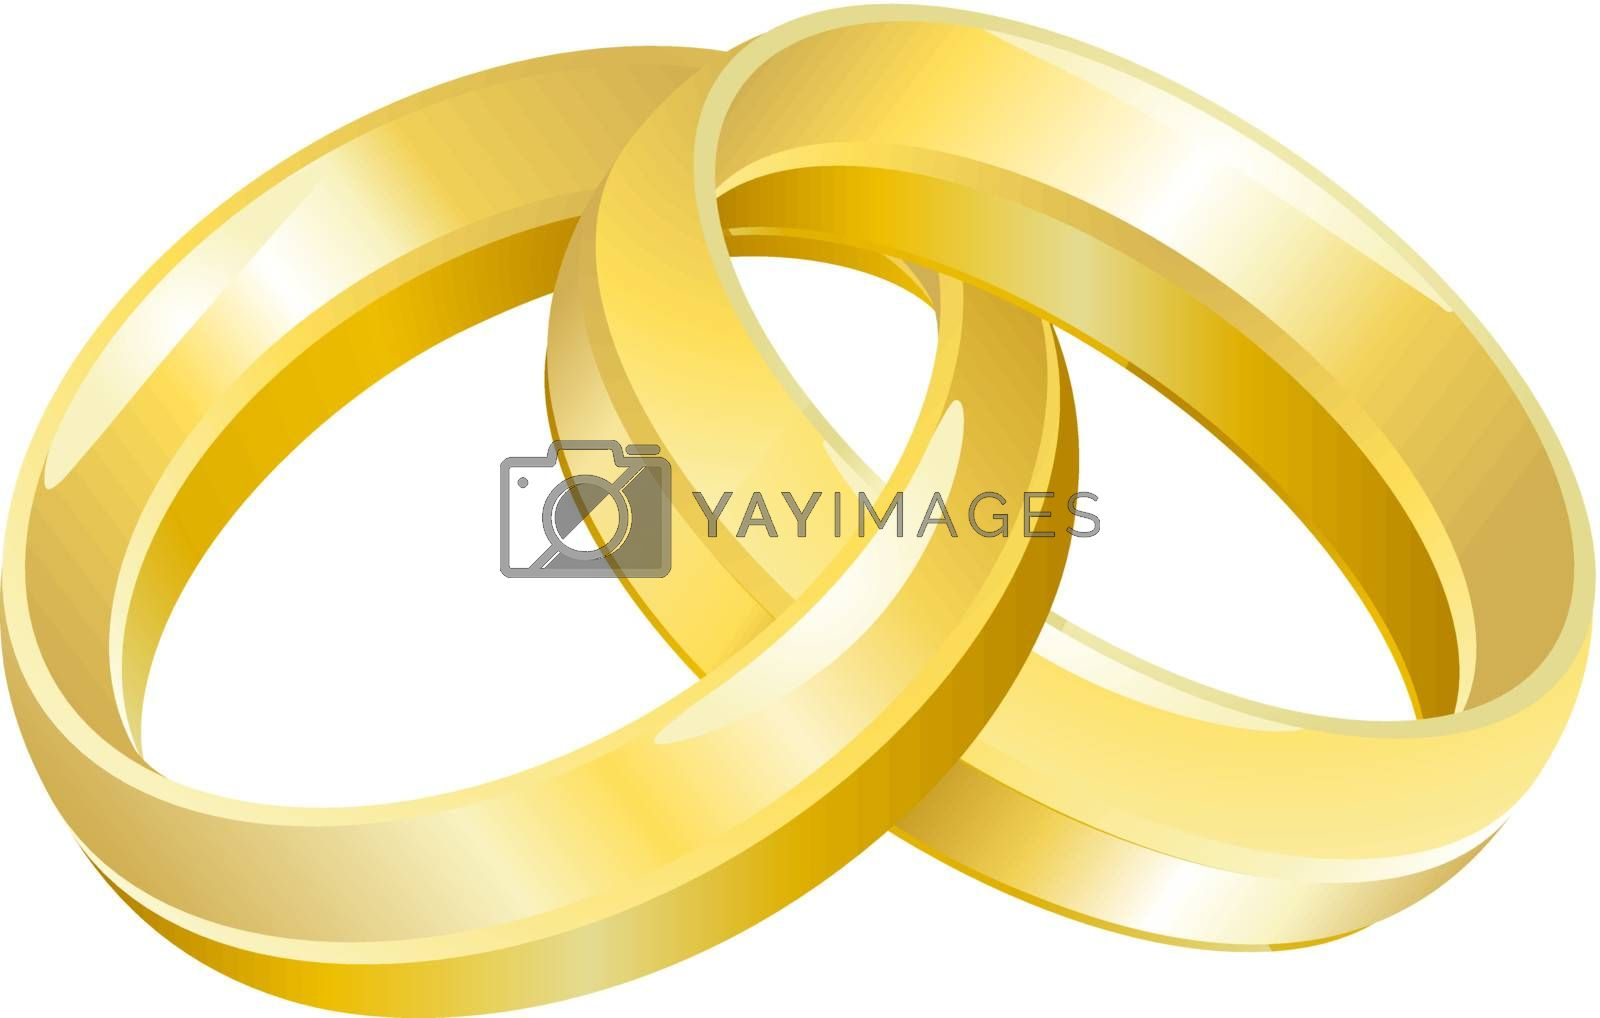 A vector illustration of intertwined wedding bands or rings